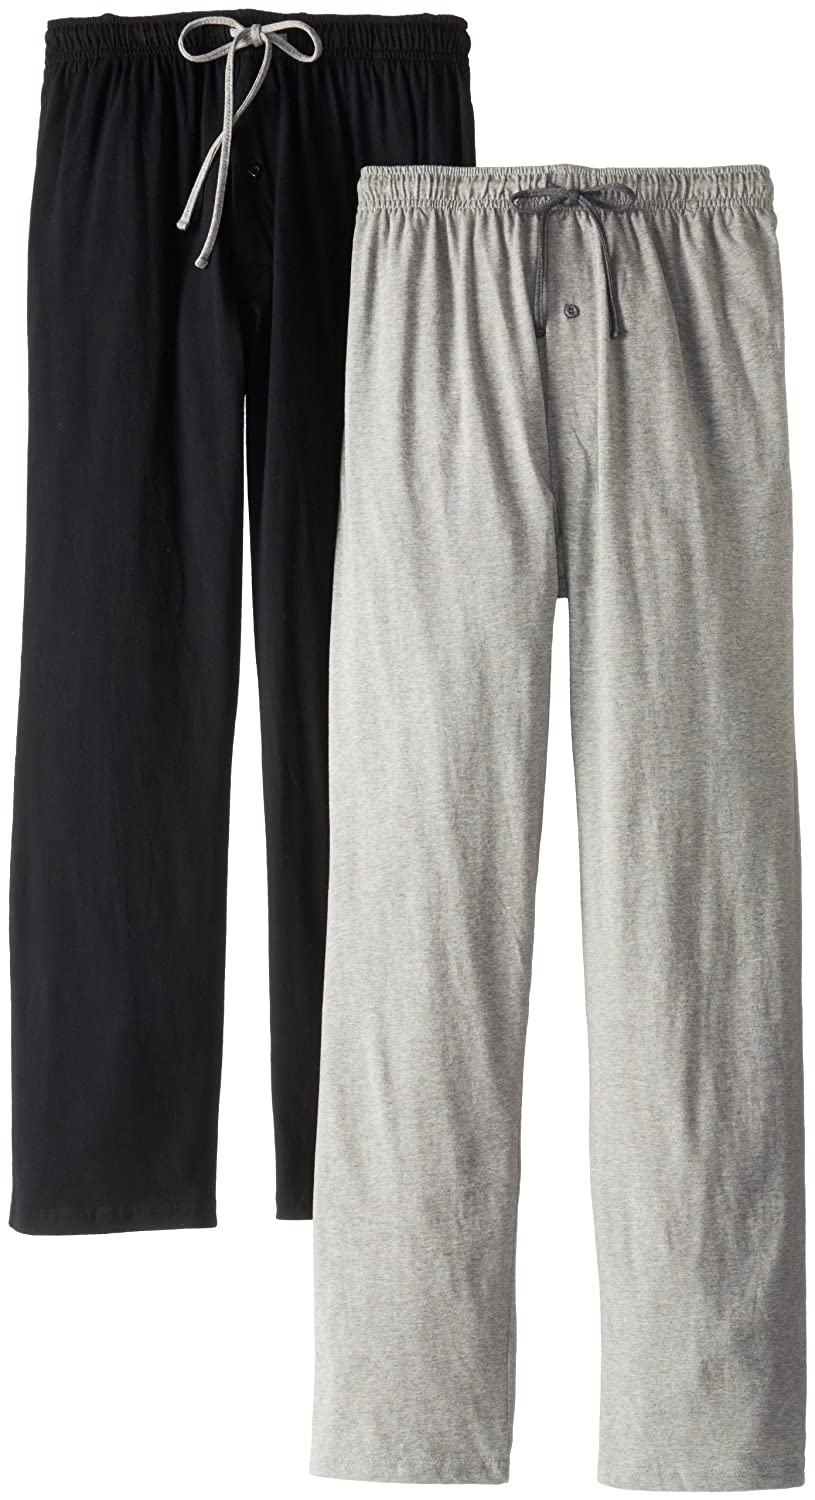 5e9da3306 Hanes Men s Solid Knit Jersey Pajama Pant (Pack of Two Pairs) at ...